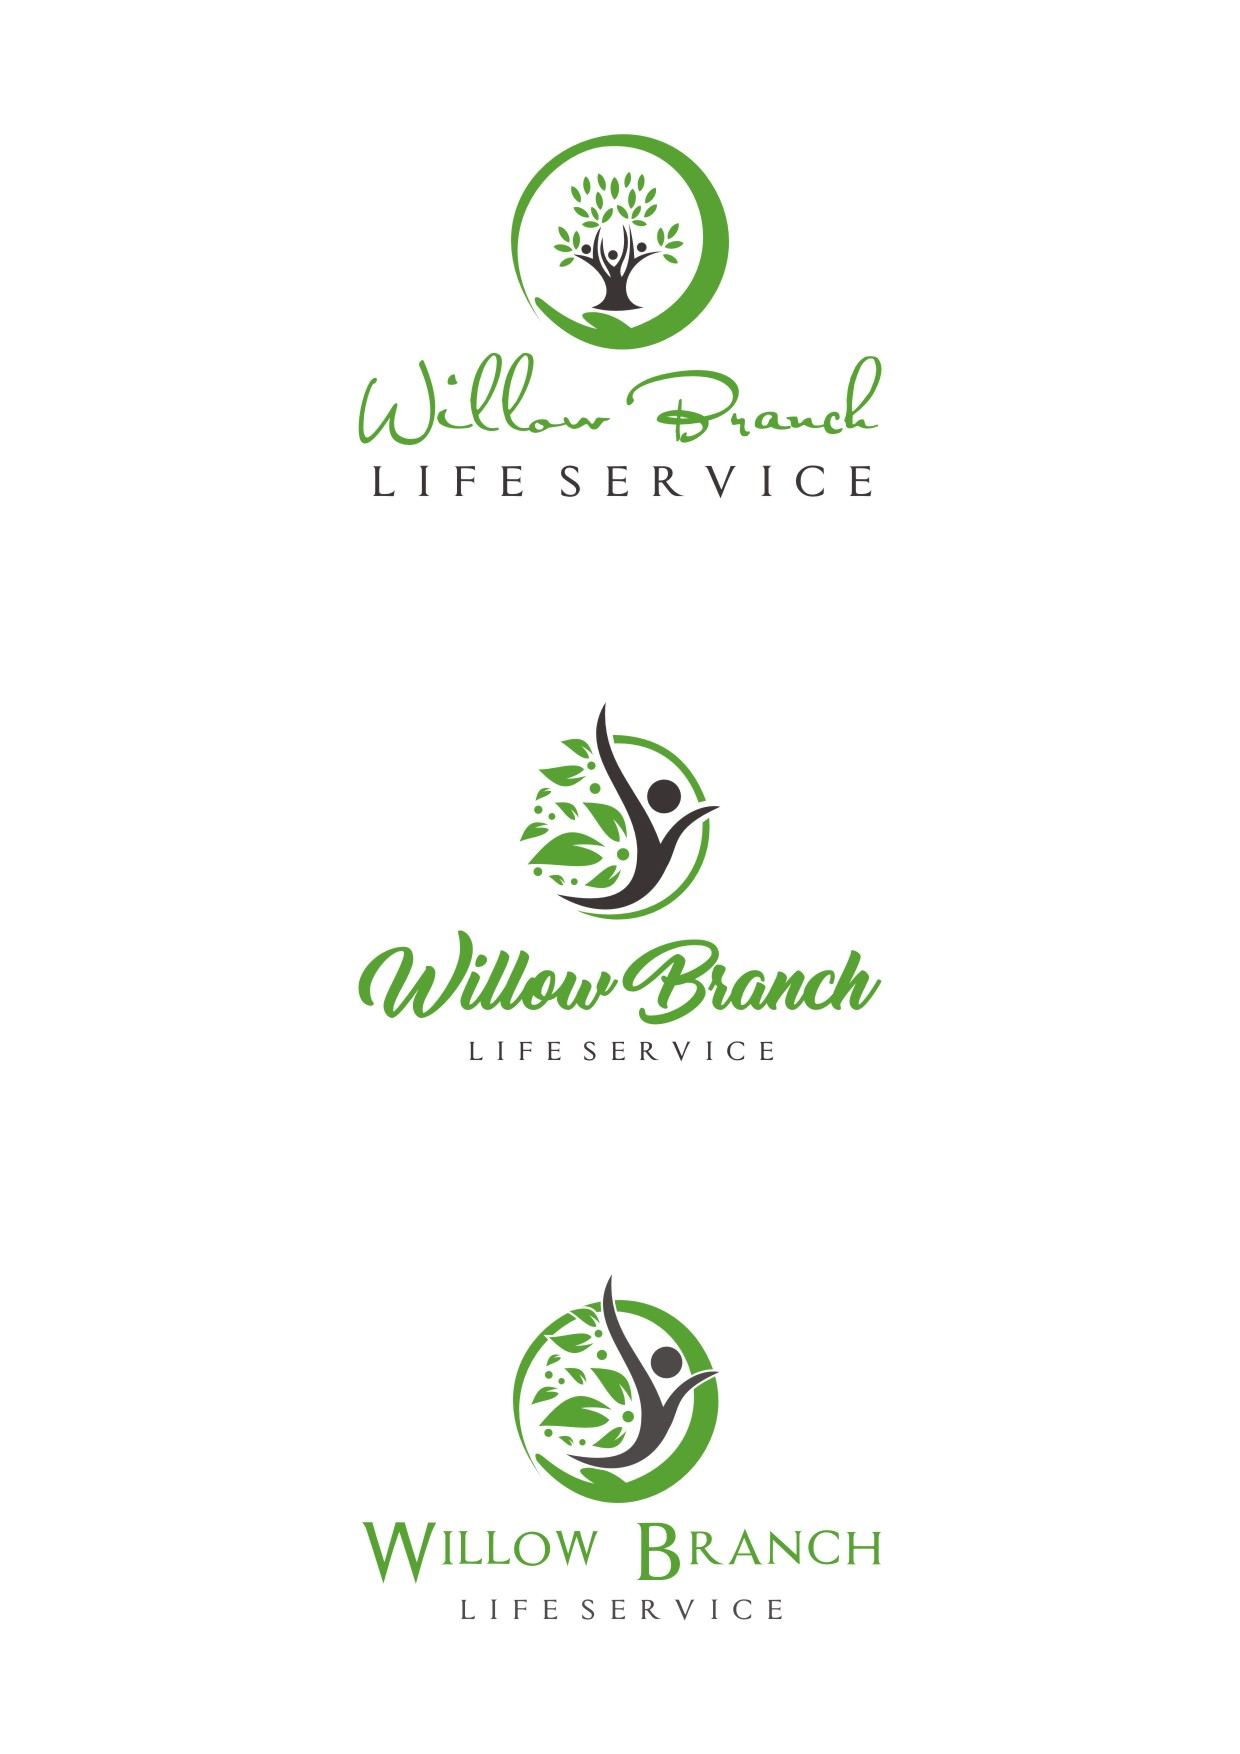 Logo Design by Lynx Graphics - Entry No. 470 in the Logo Design Contest Artistic Logo Design for Willow Branch Life Service.